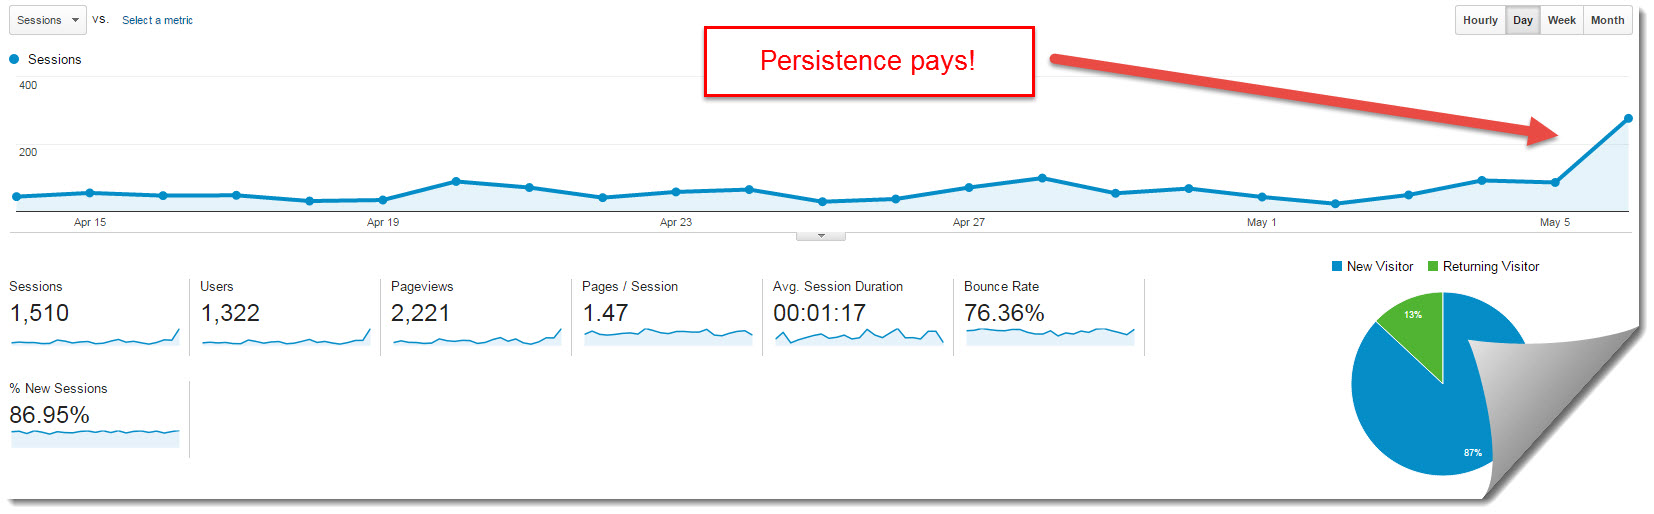 My Internet Quest Google Analytics for May 2015